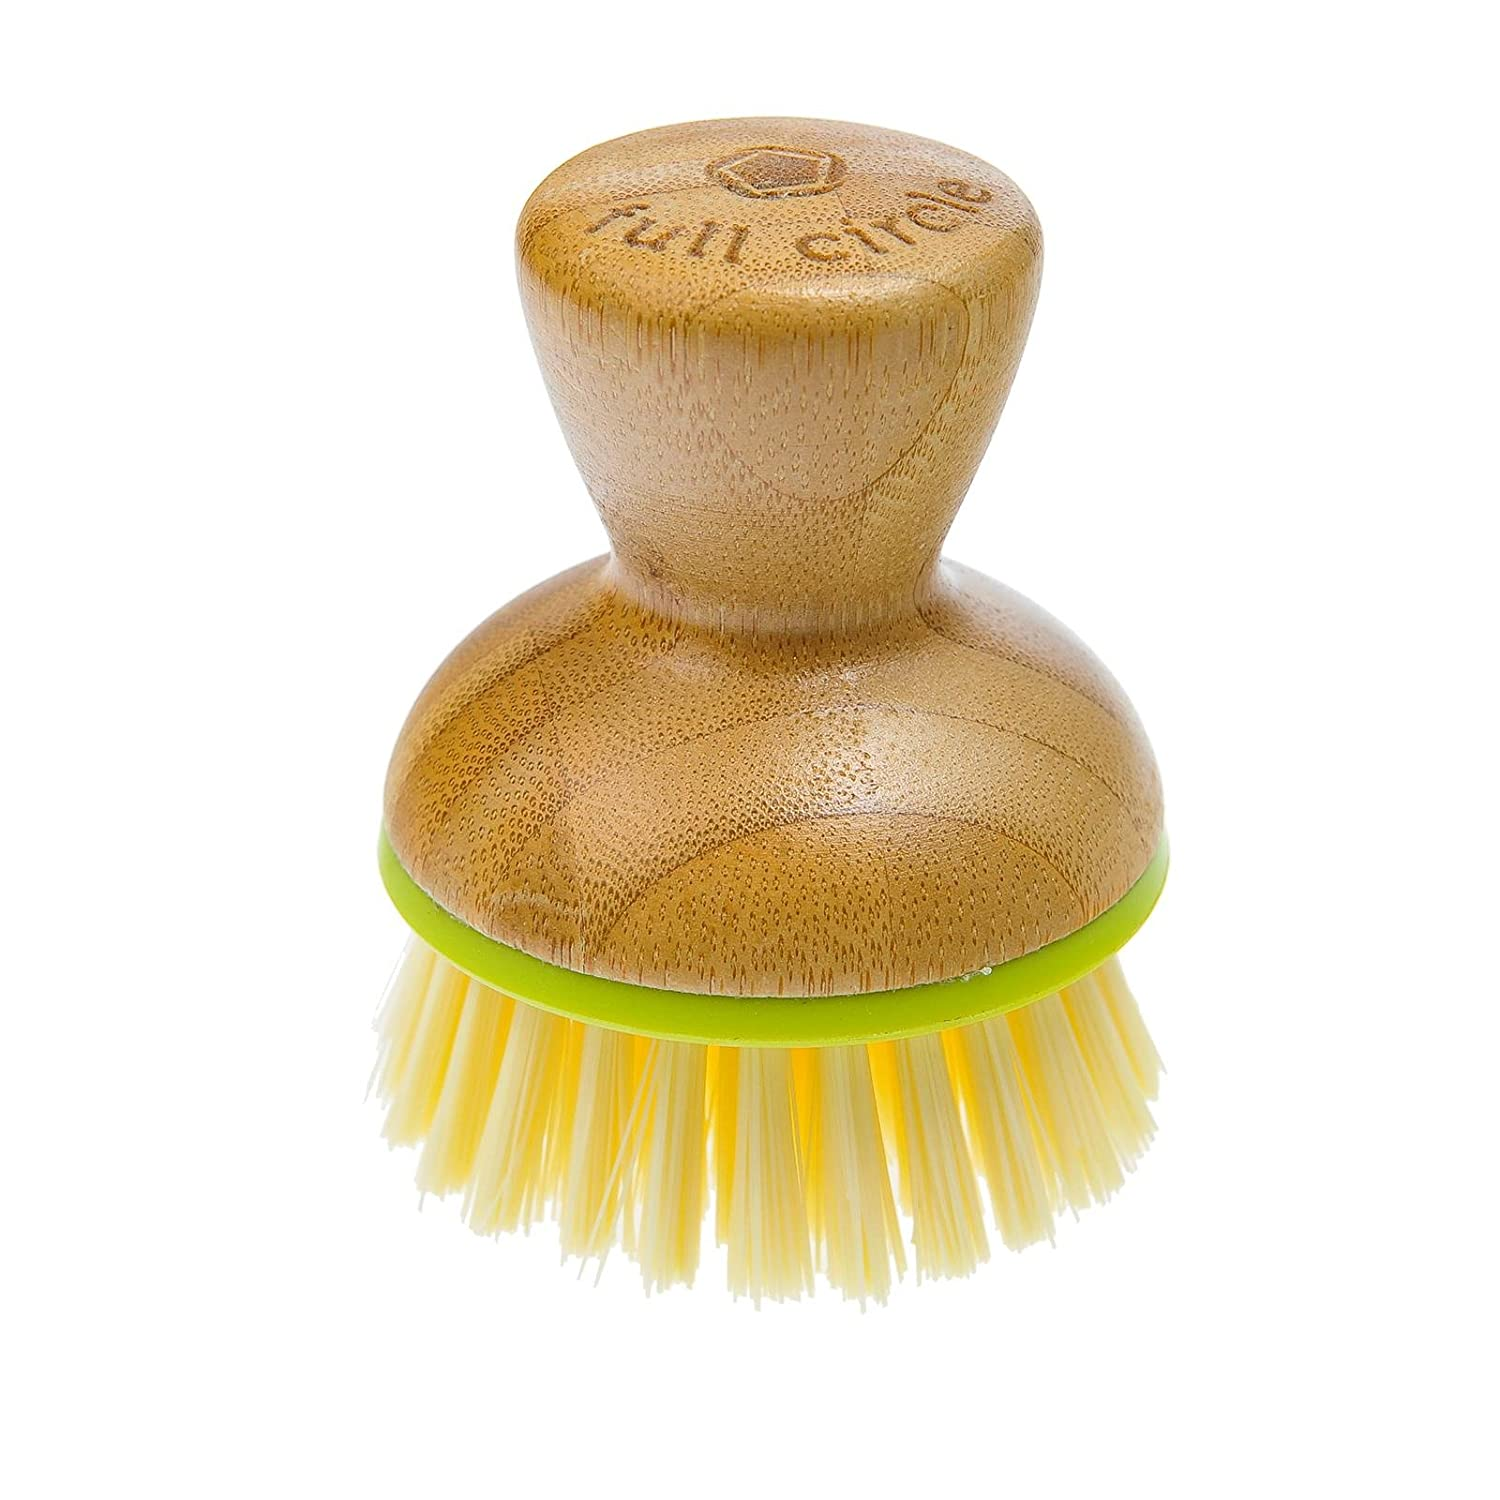 Full Circle Bubble Up Dish Brush, Bamboo Handle, Green (FC12115G) Full Circle Home